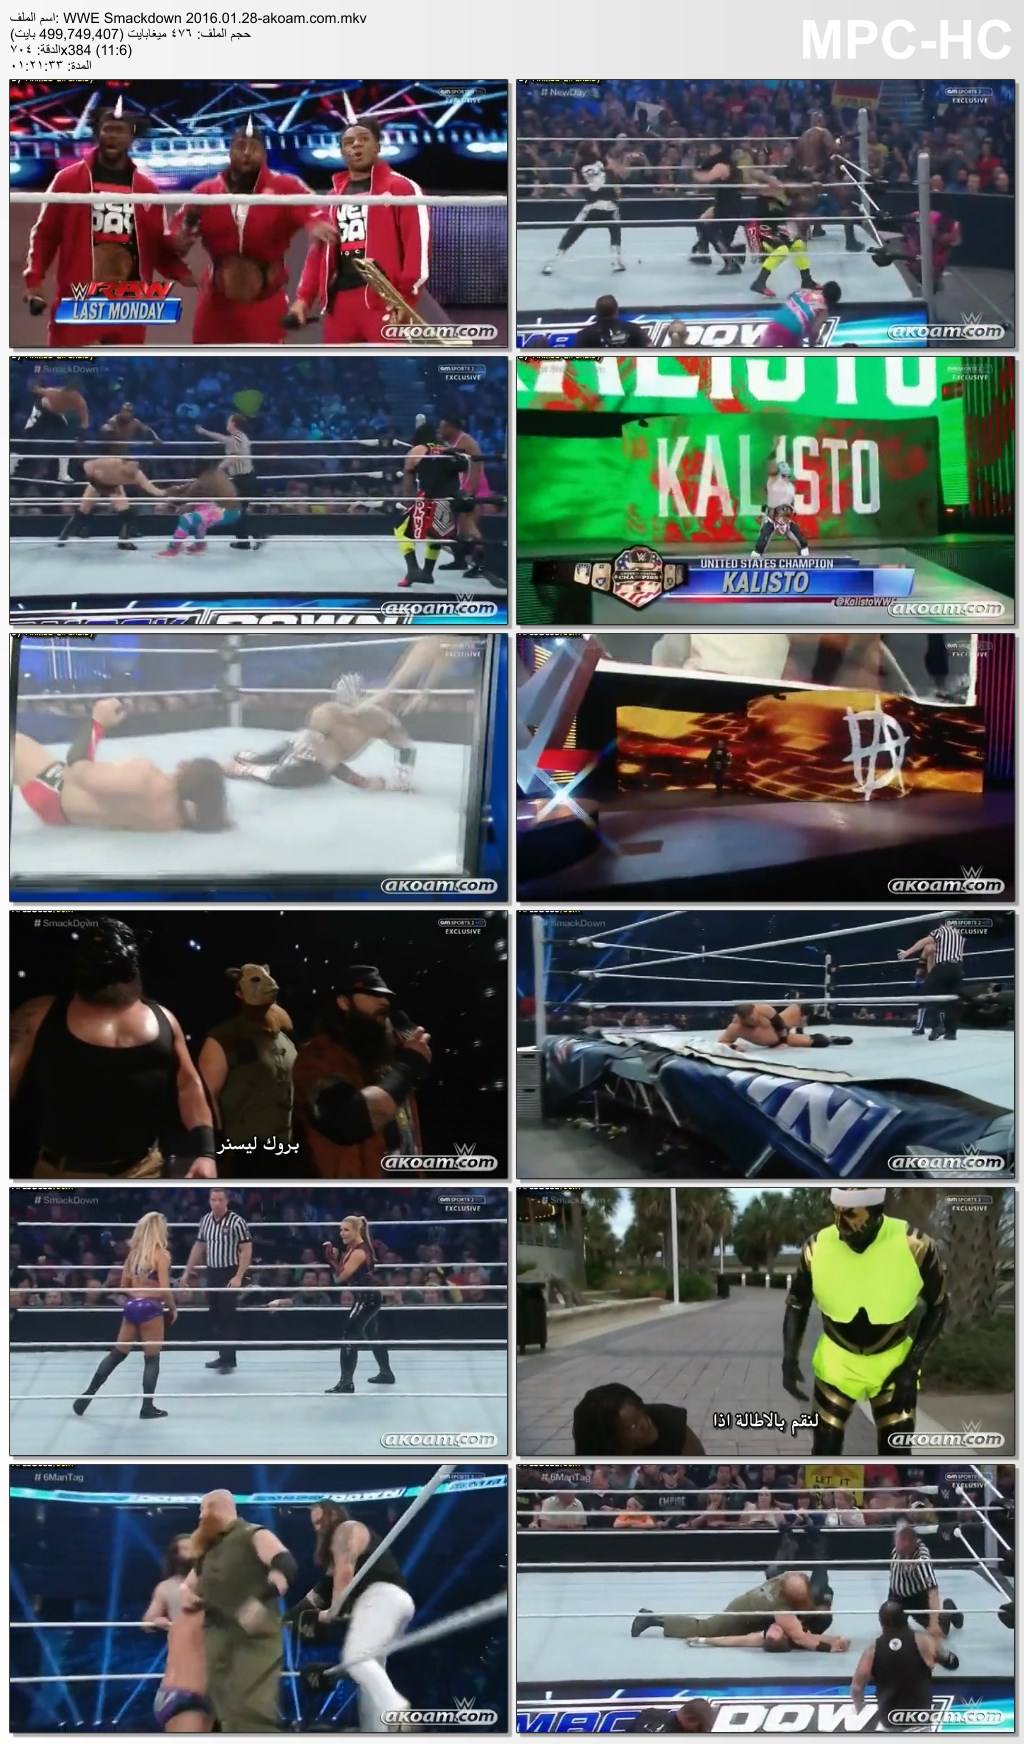 Smackdown,WWE Smackdown,WWE,سماك داون